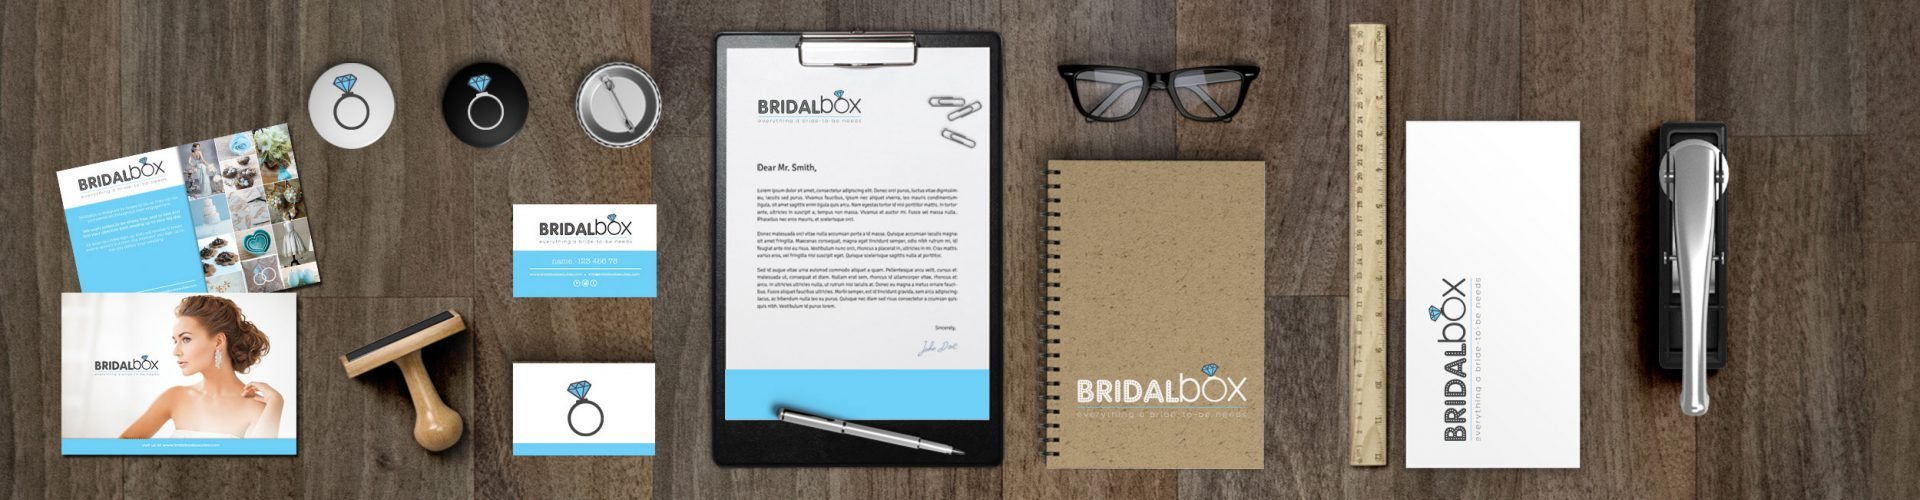 the-bridal-box-img-banner